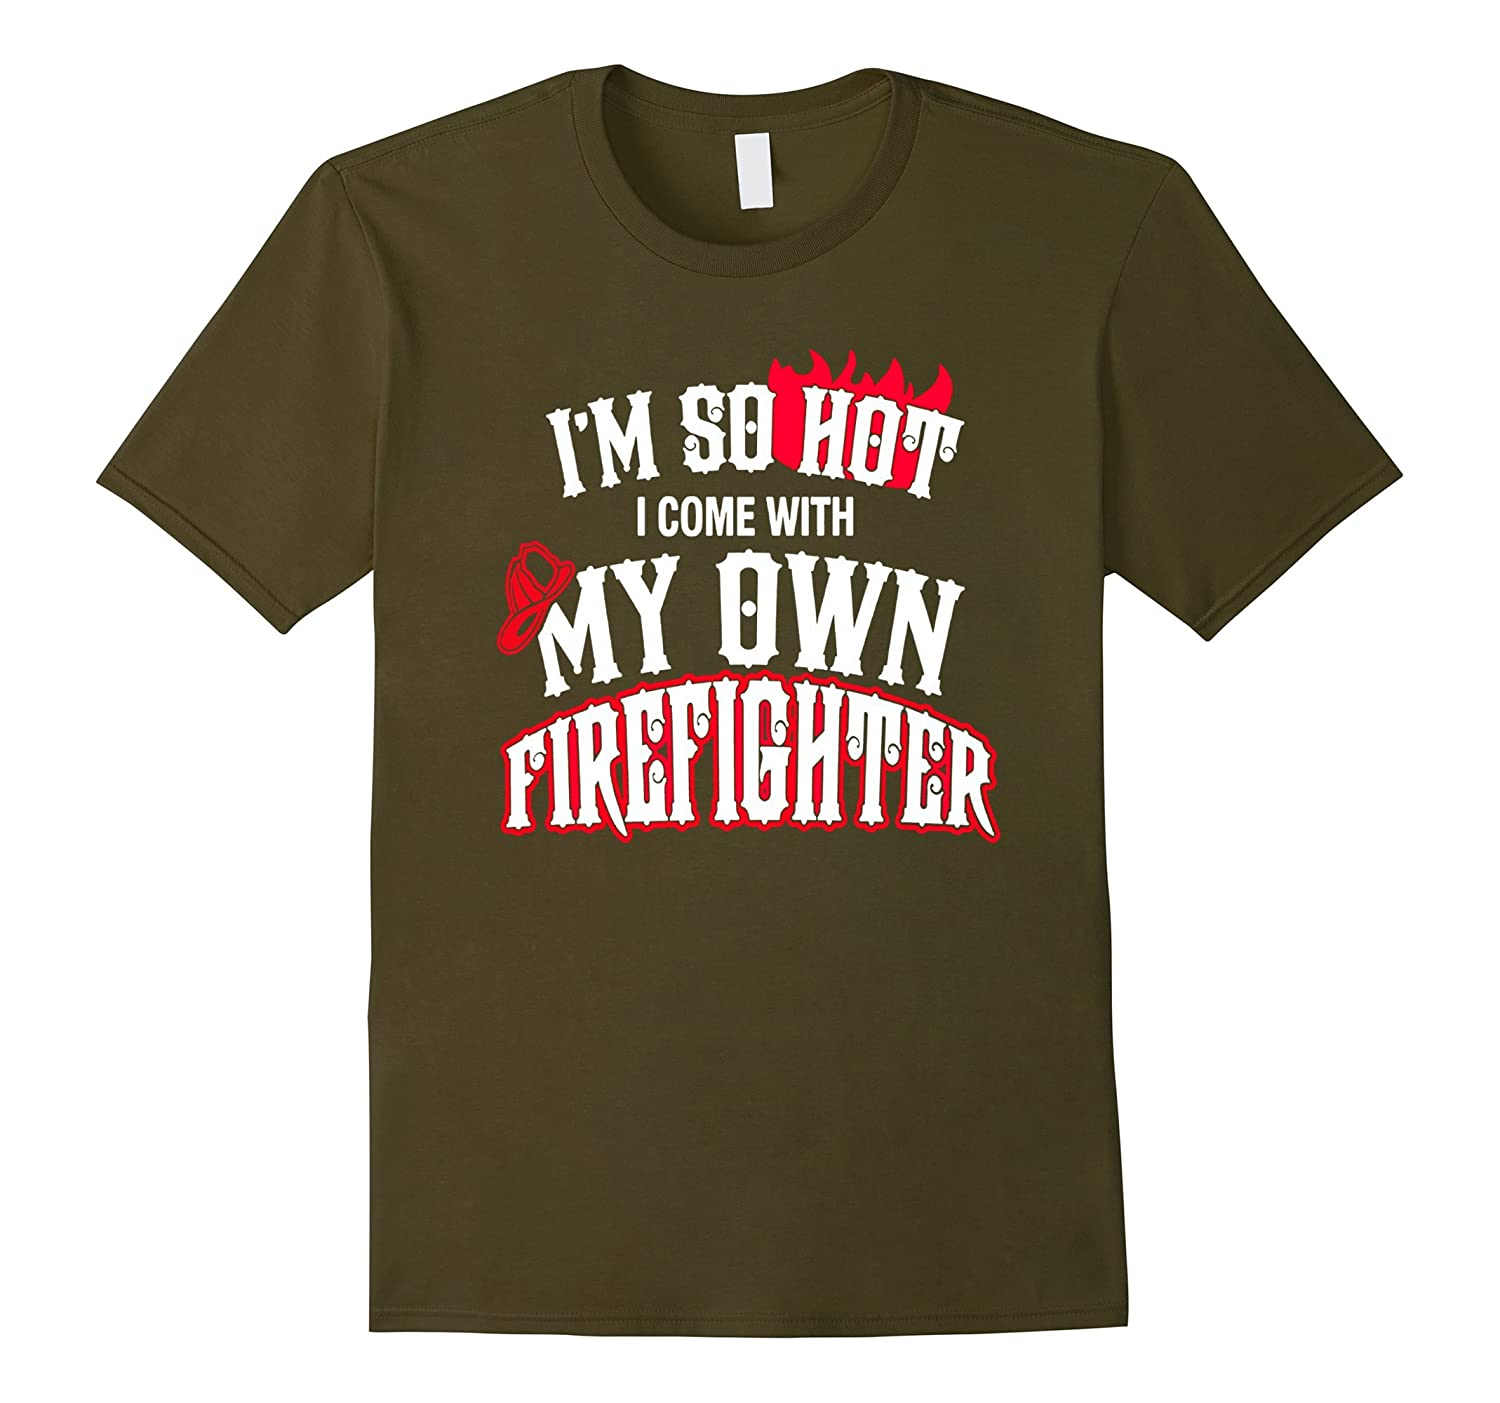 I'm So Hot I Come With My Own Firefighter Shirt Tee t-Shirt-CL